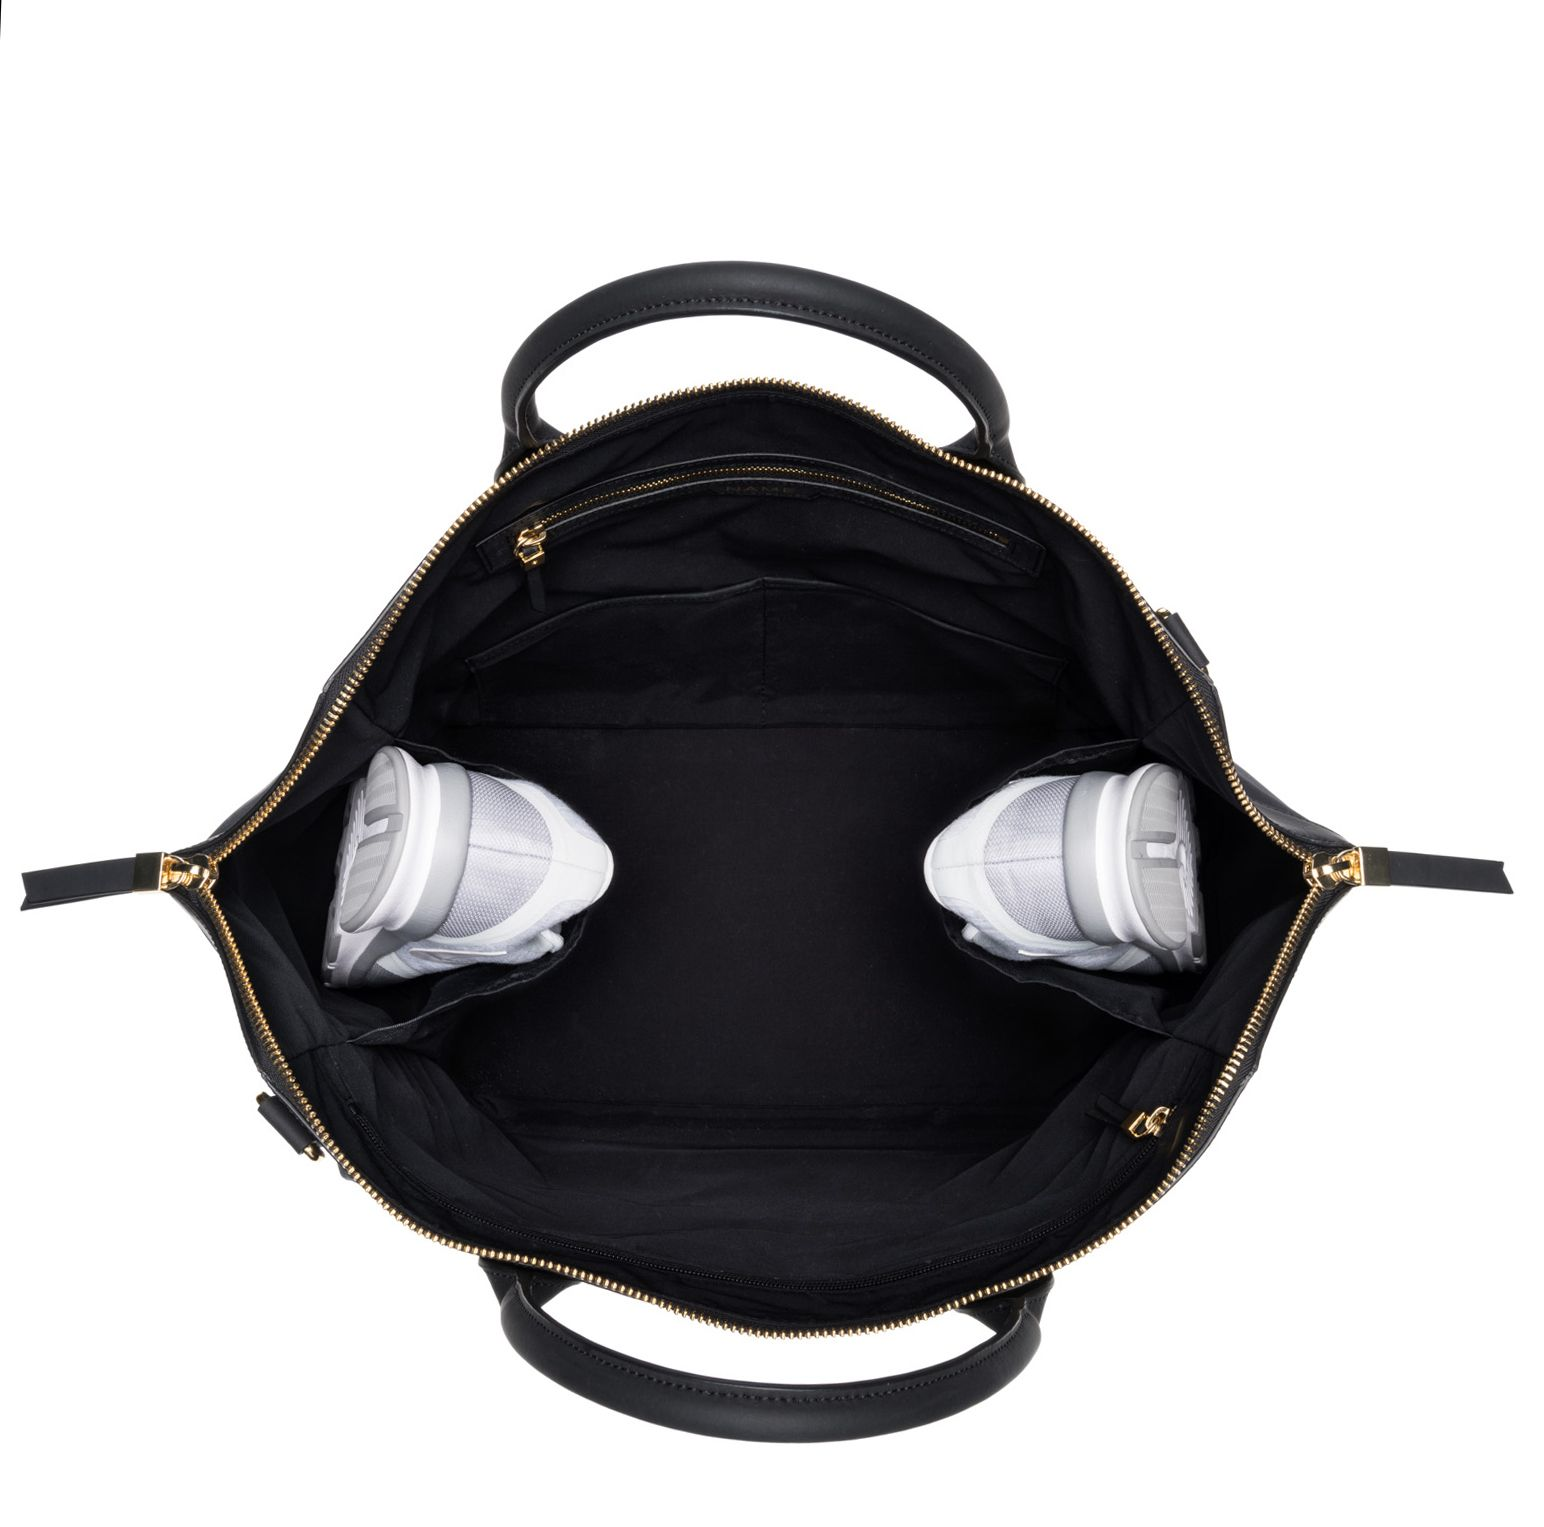 de2eb66eea5 Name Satchel- Luxury gym bag made with anti-microbial nylon, genuine  Italian leather, gold metal hardware, and understated front yoga mat pocket.